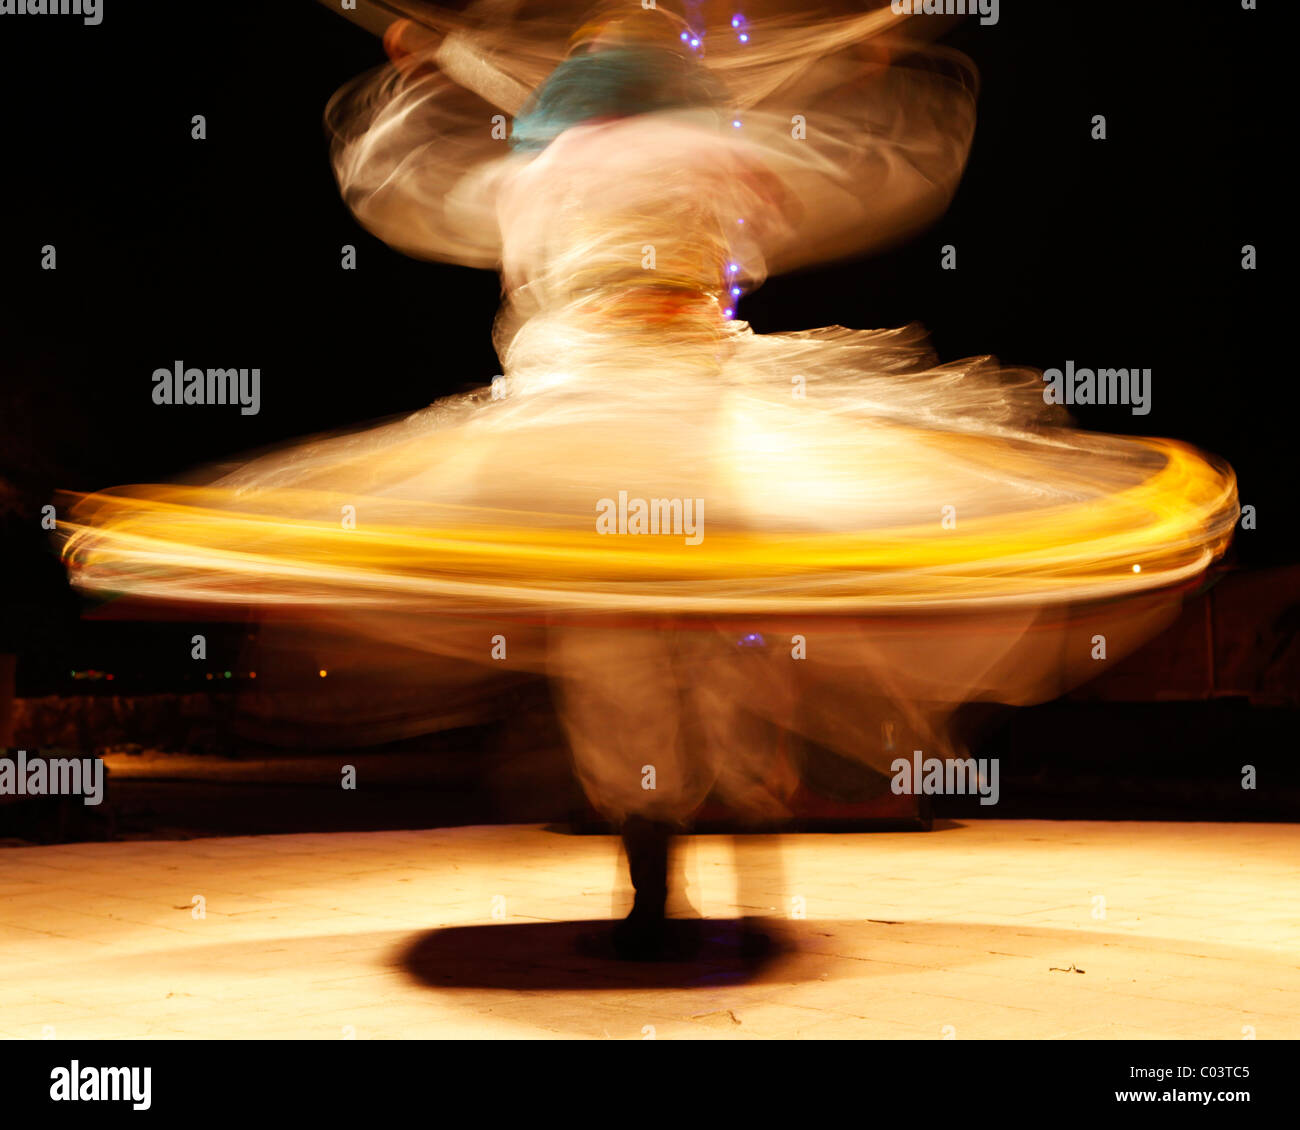 A Whirling Dervish dances to entertain tourists in Egypt. Whirling Dervishes are members of a Sufi order. - Stock Image